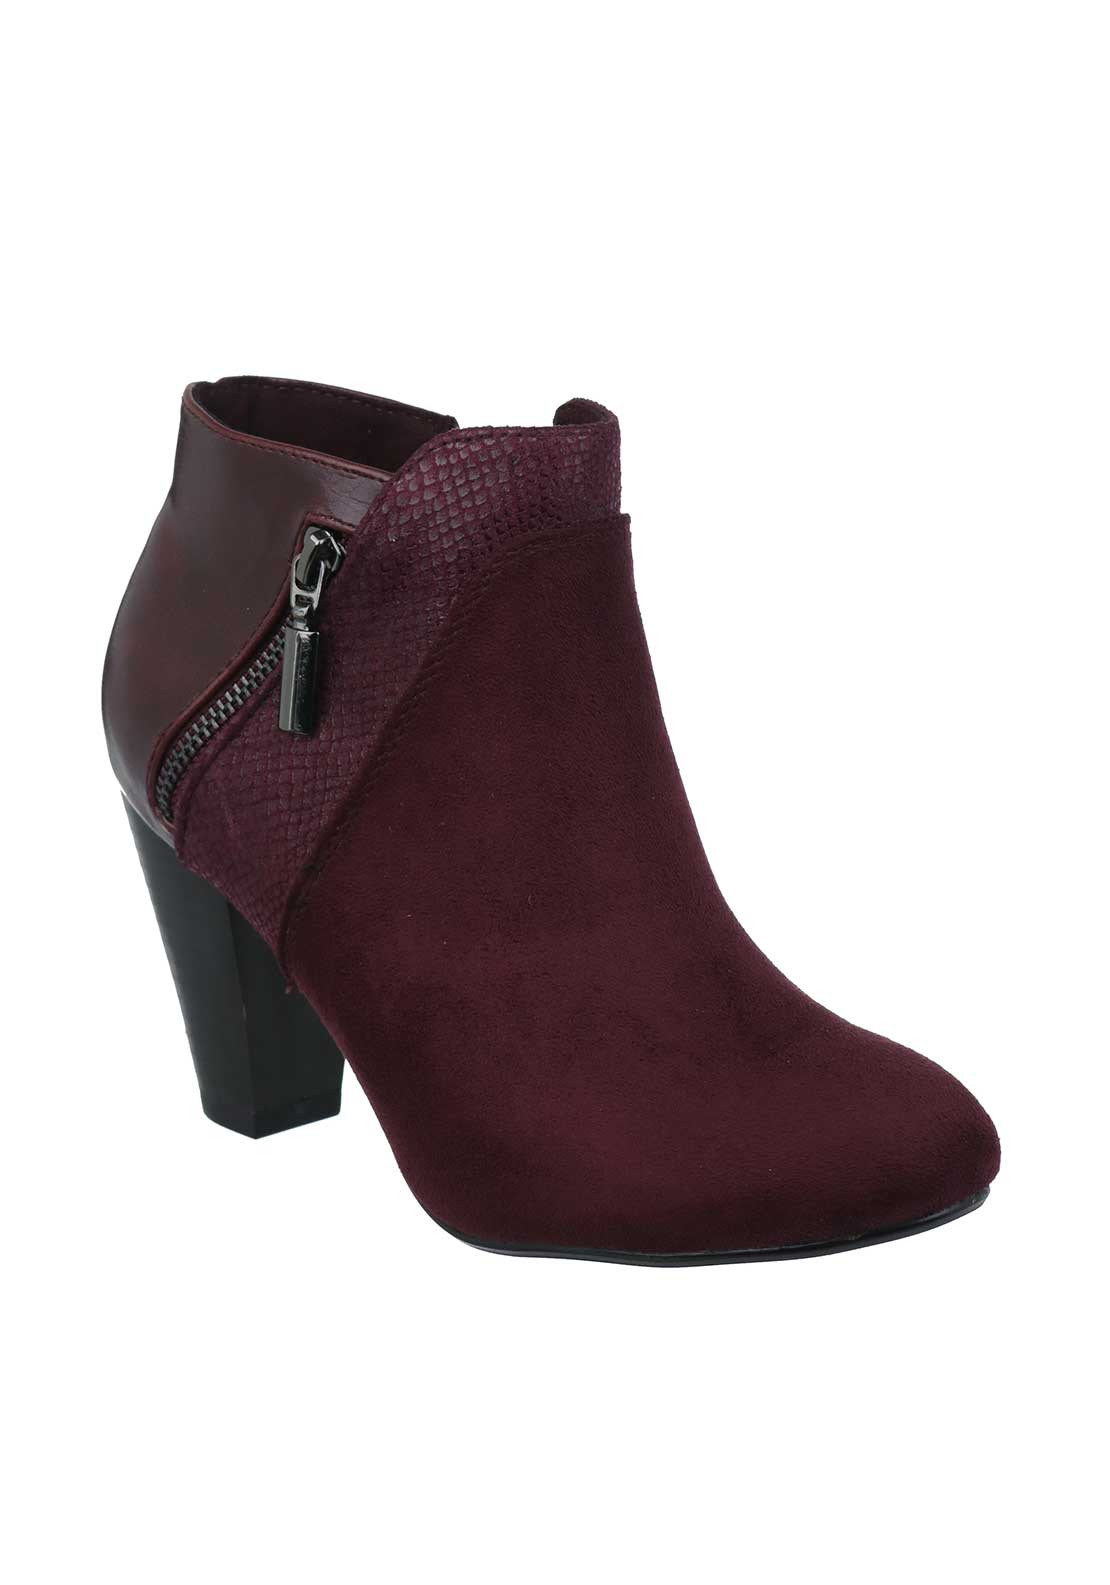 Kate Appleby Albony Way Heeled Ankle Boots, Wine